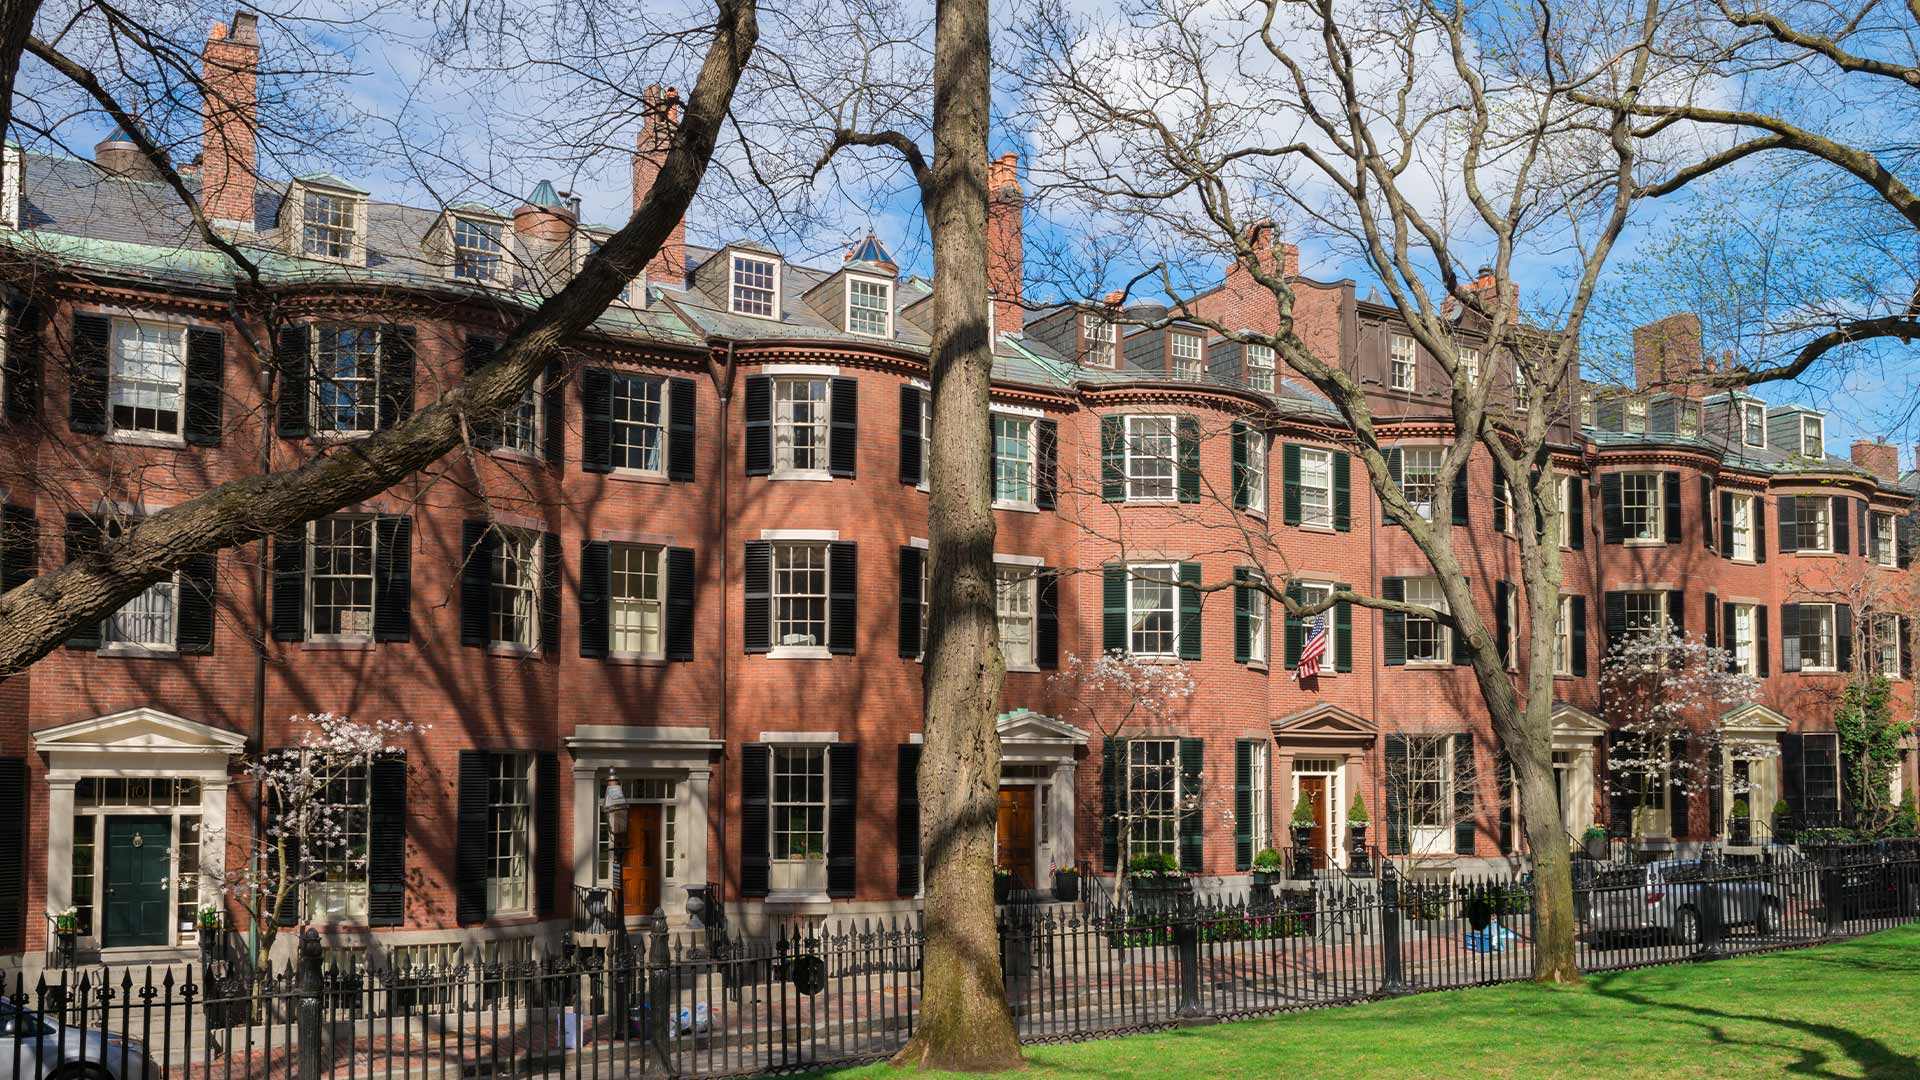 Residences in Beacon Hill, Boston